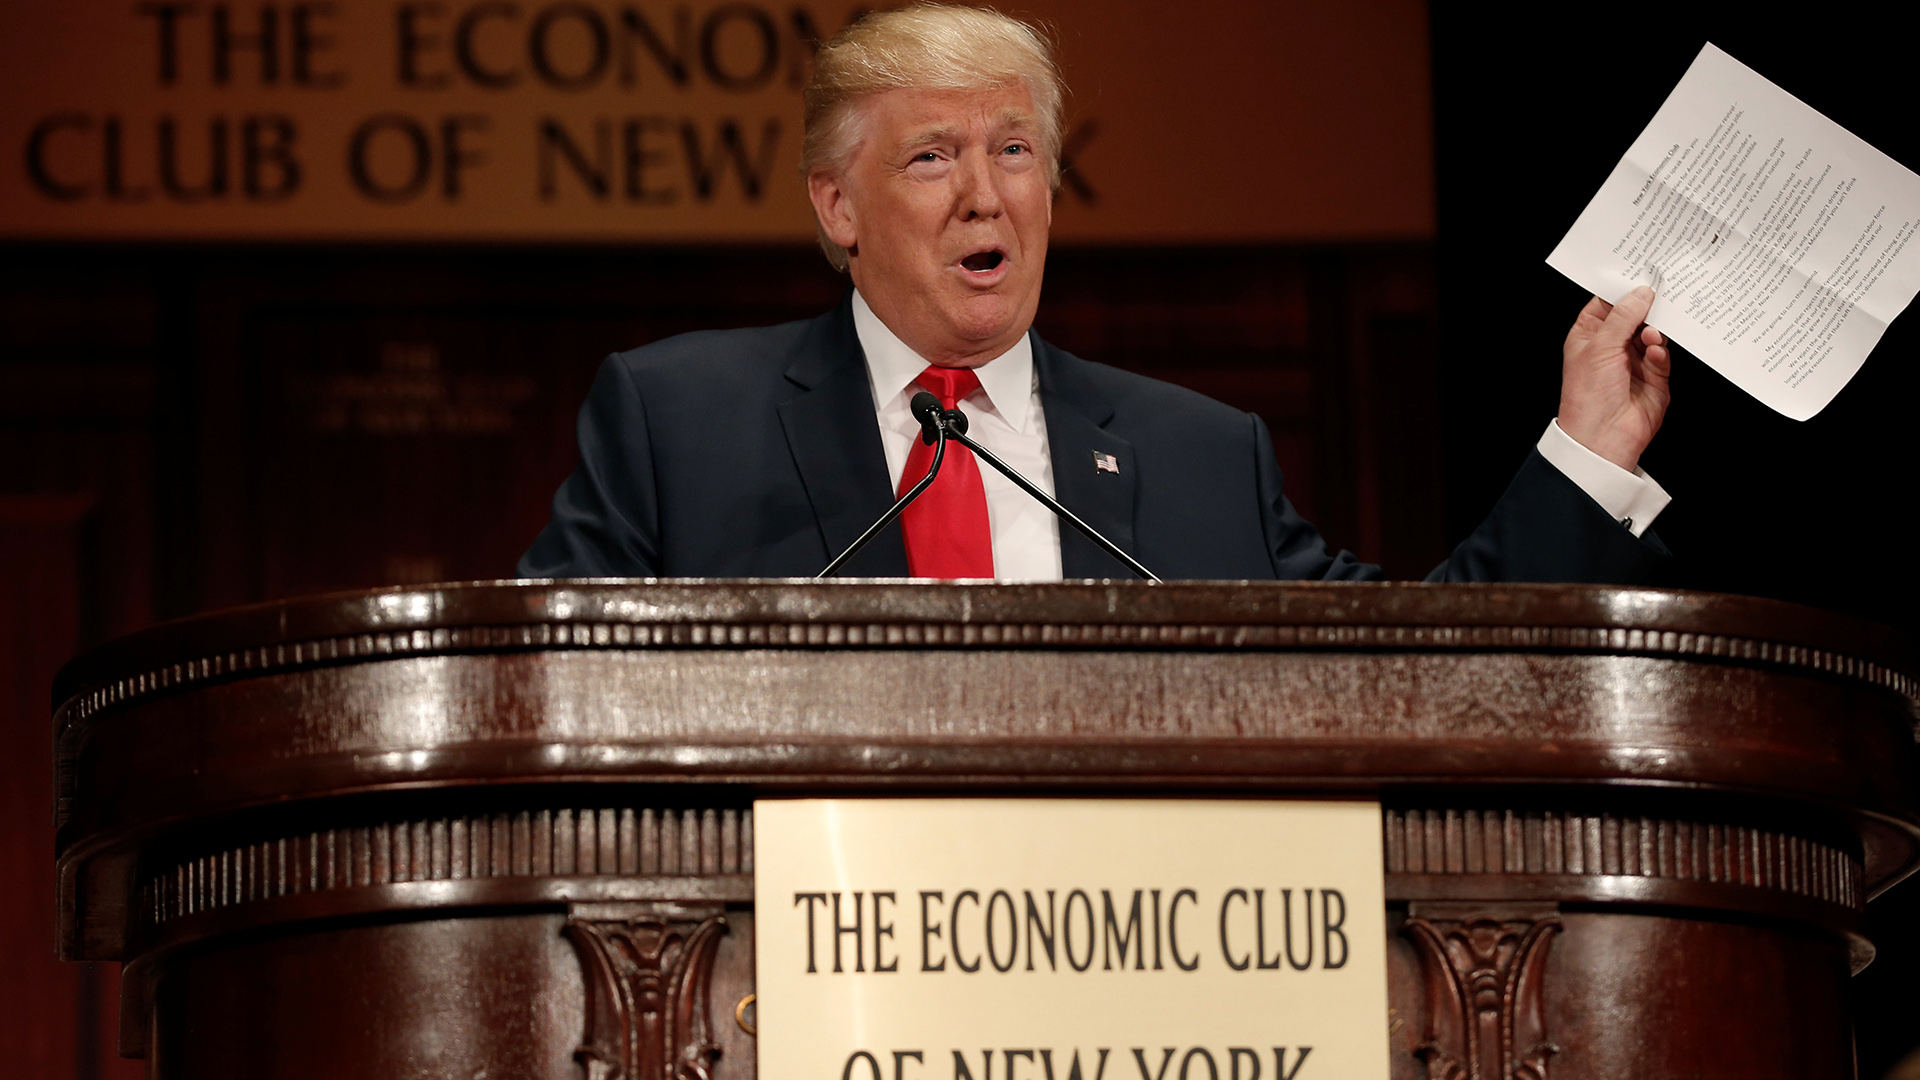 Trump outlines vision for economy, promising large tax cuts